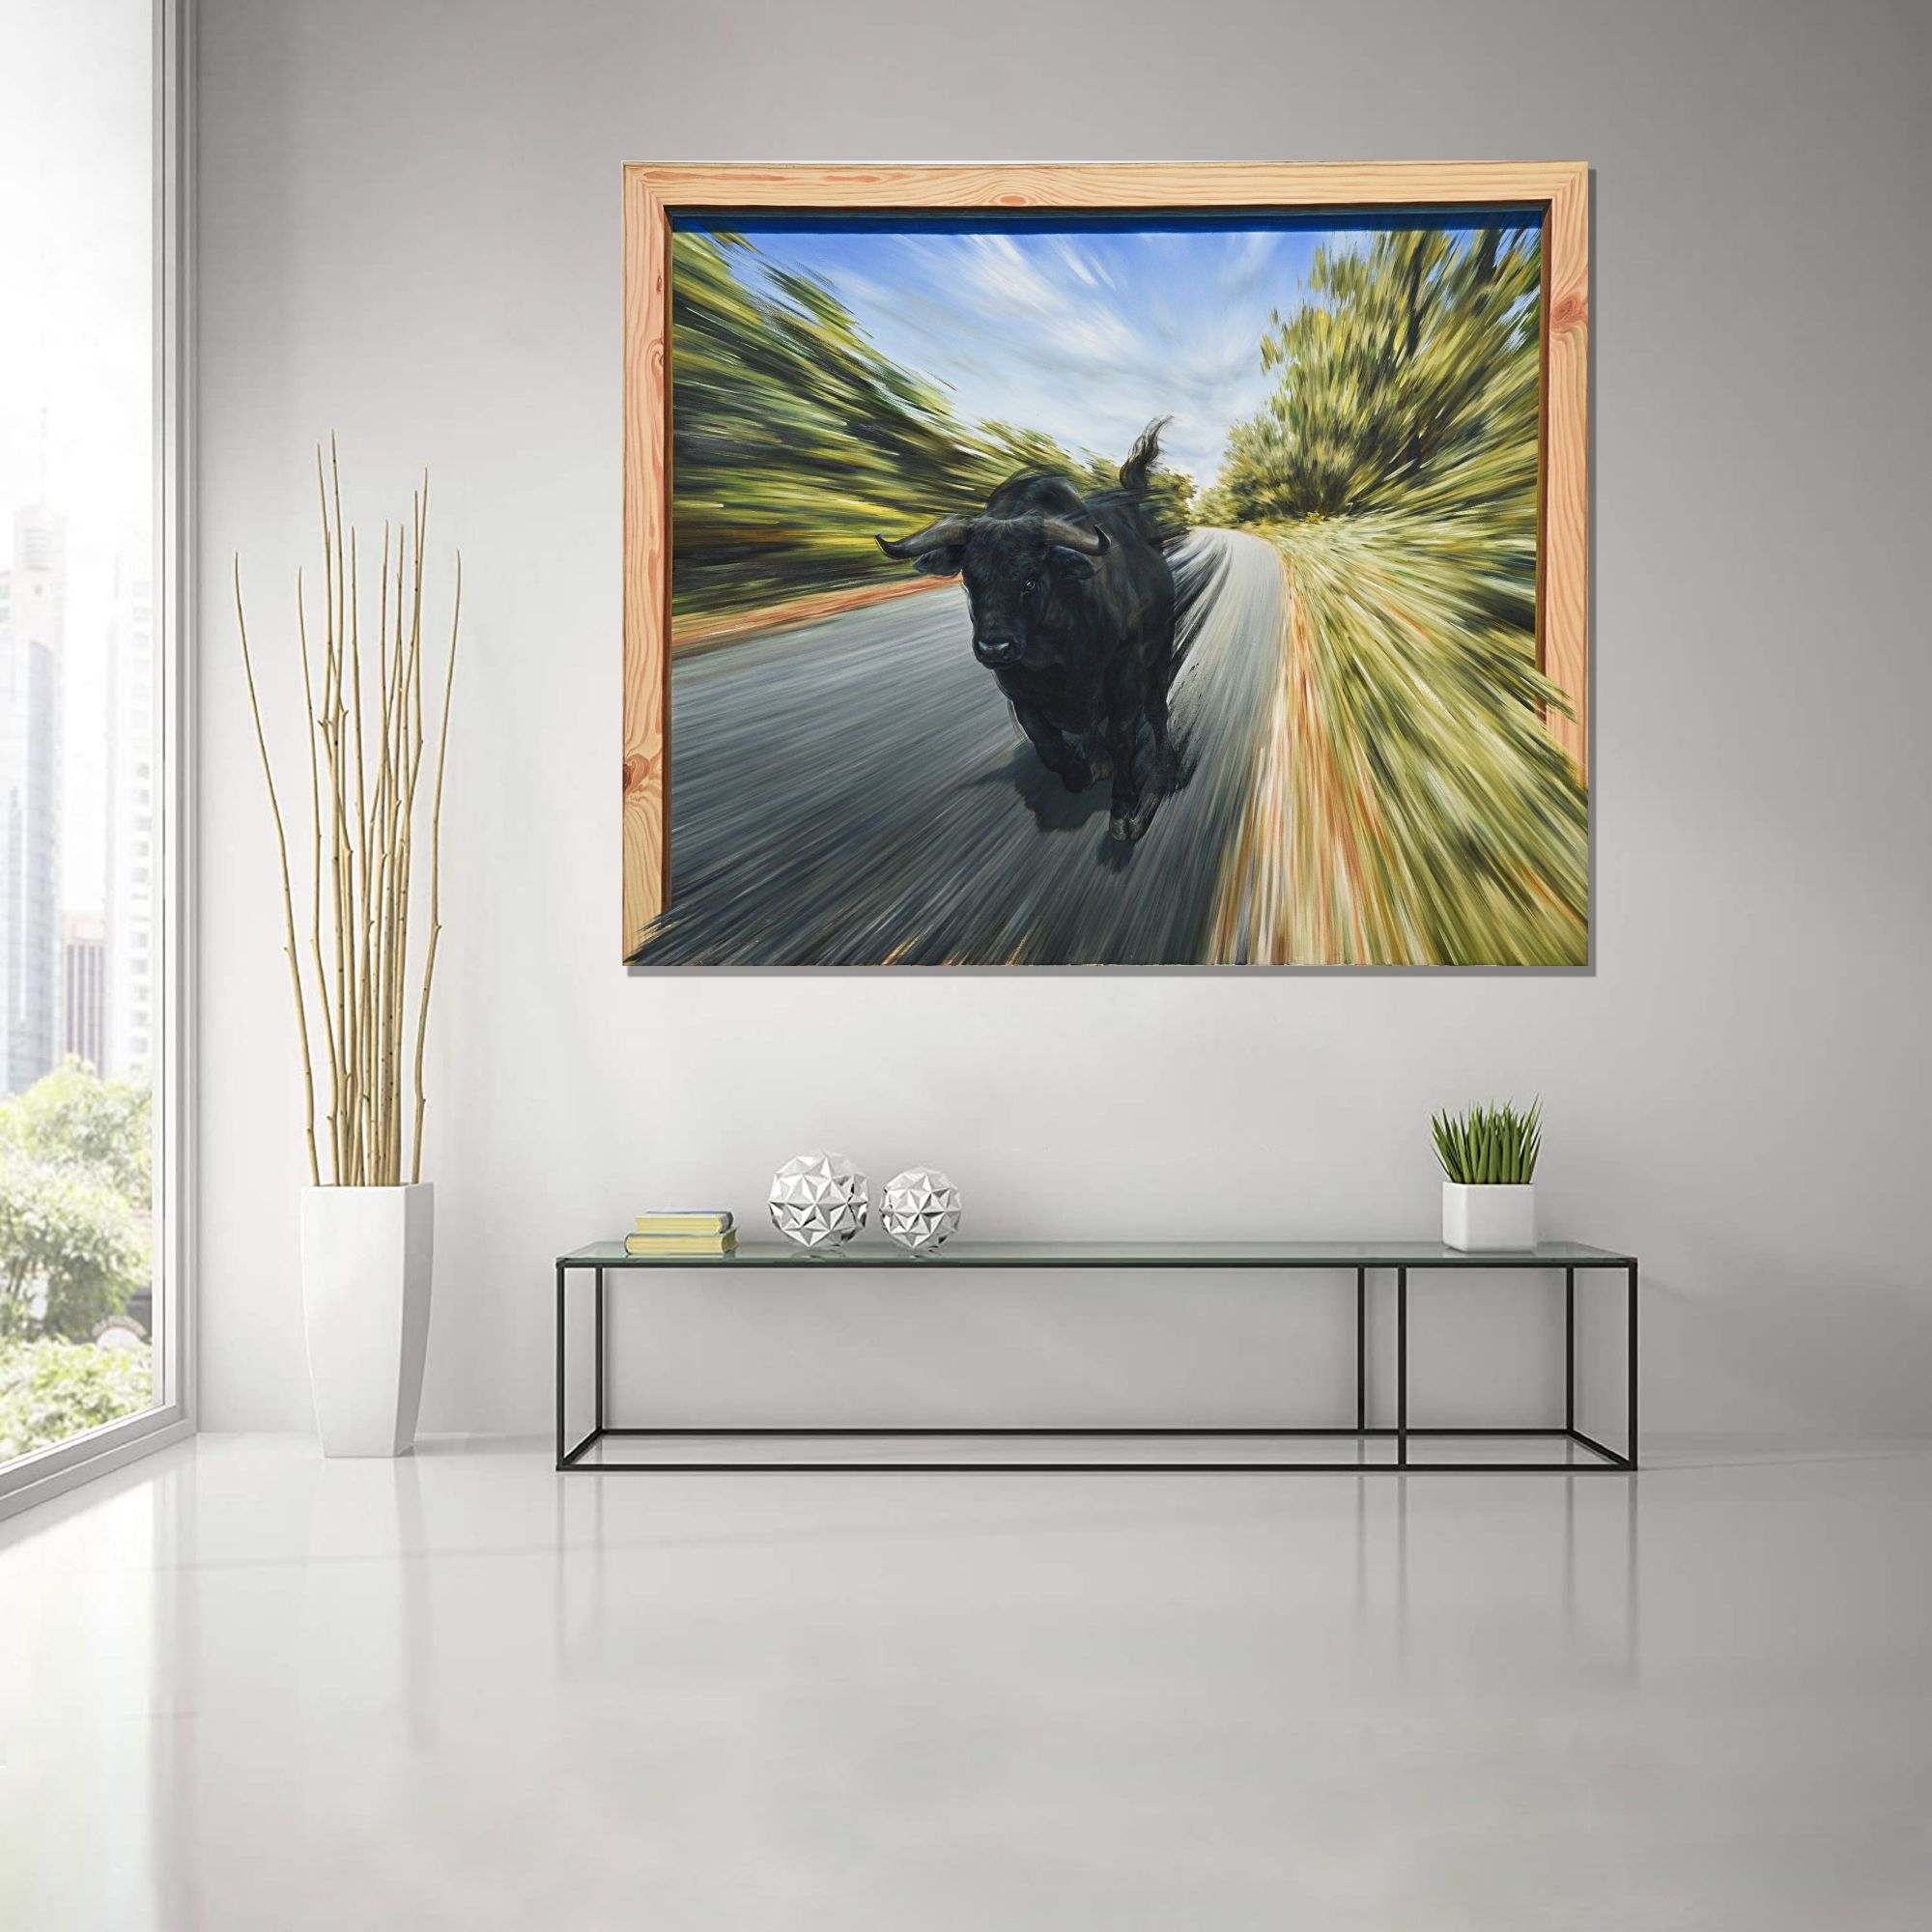 3D ABSTRACT ART BULL PAINTING